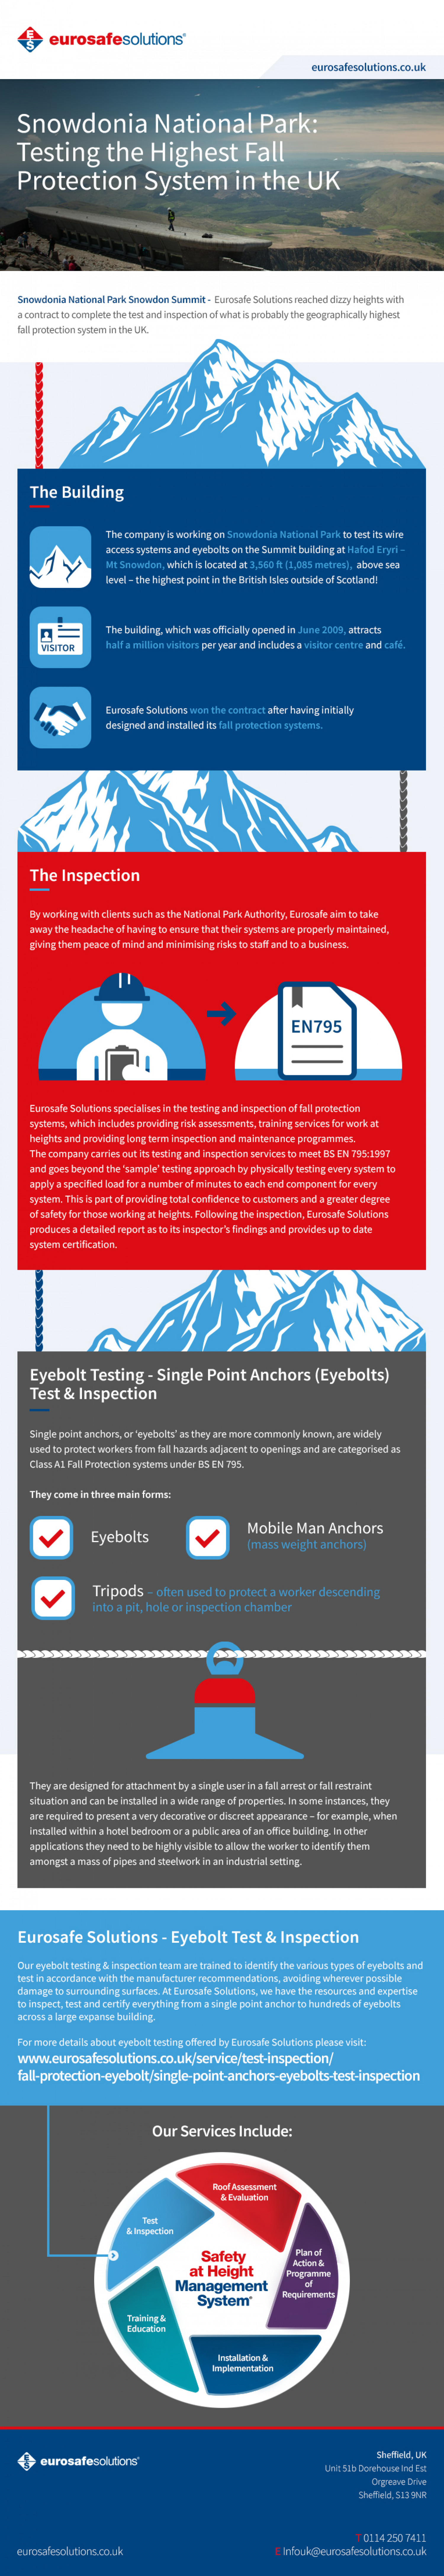 Snowdonia National Park: Testing the Highest Fall Protection System in the UK Infographic